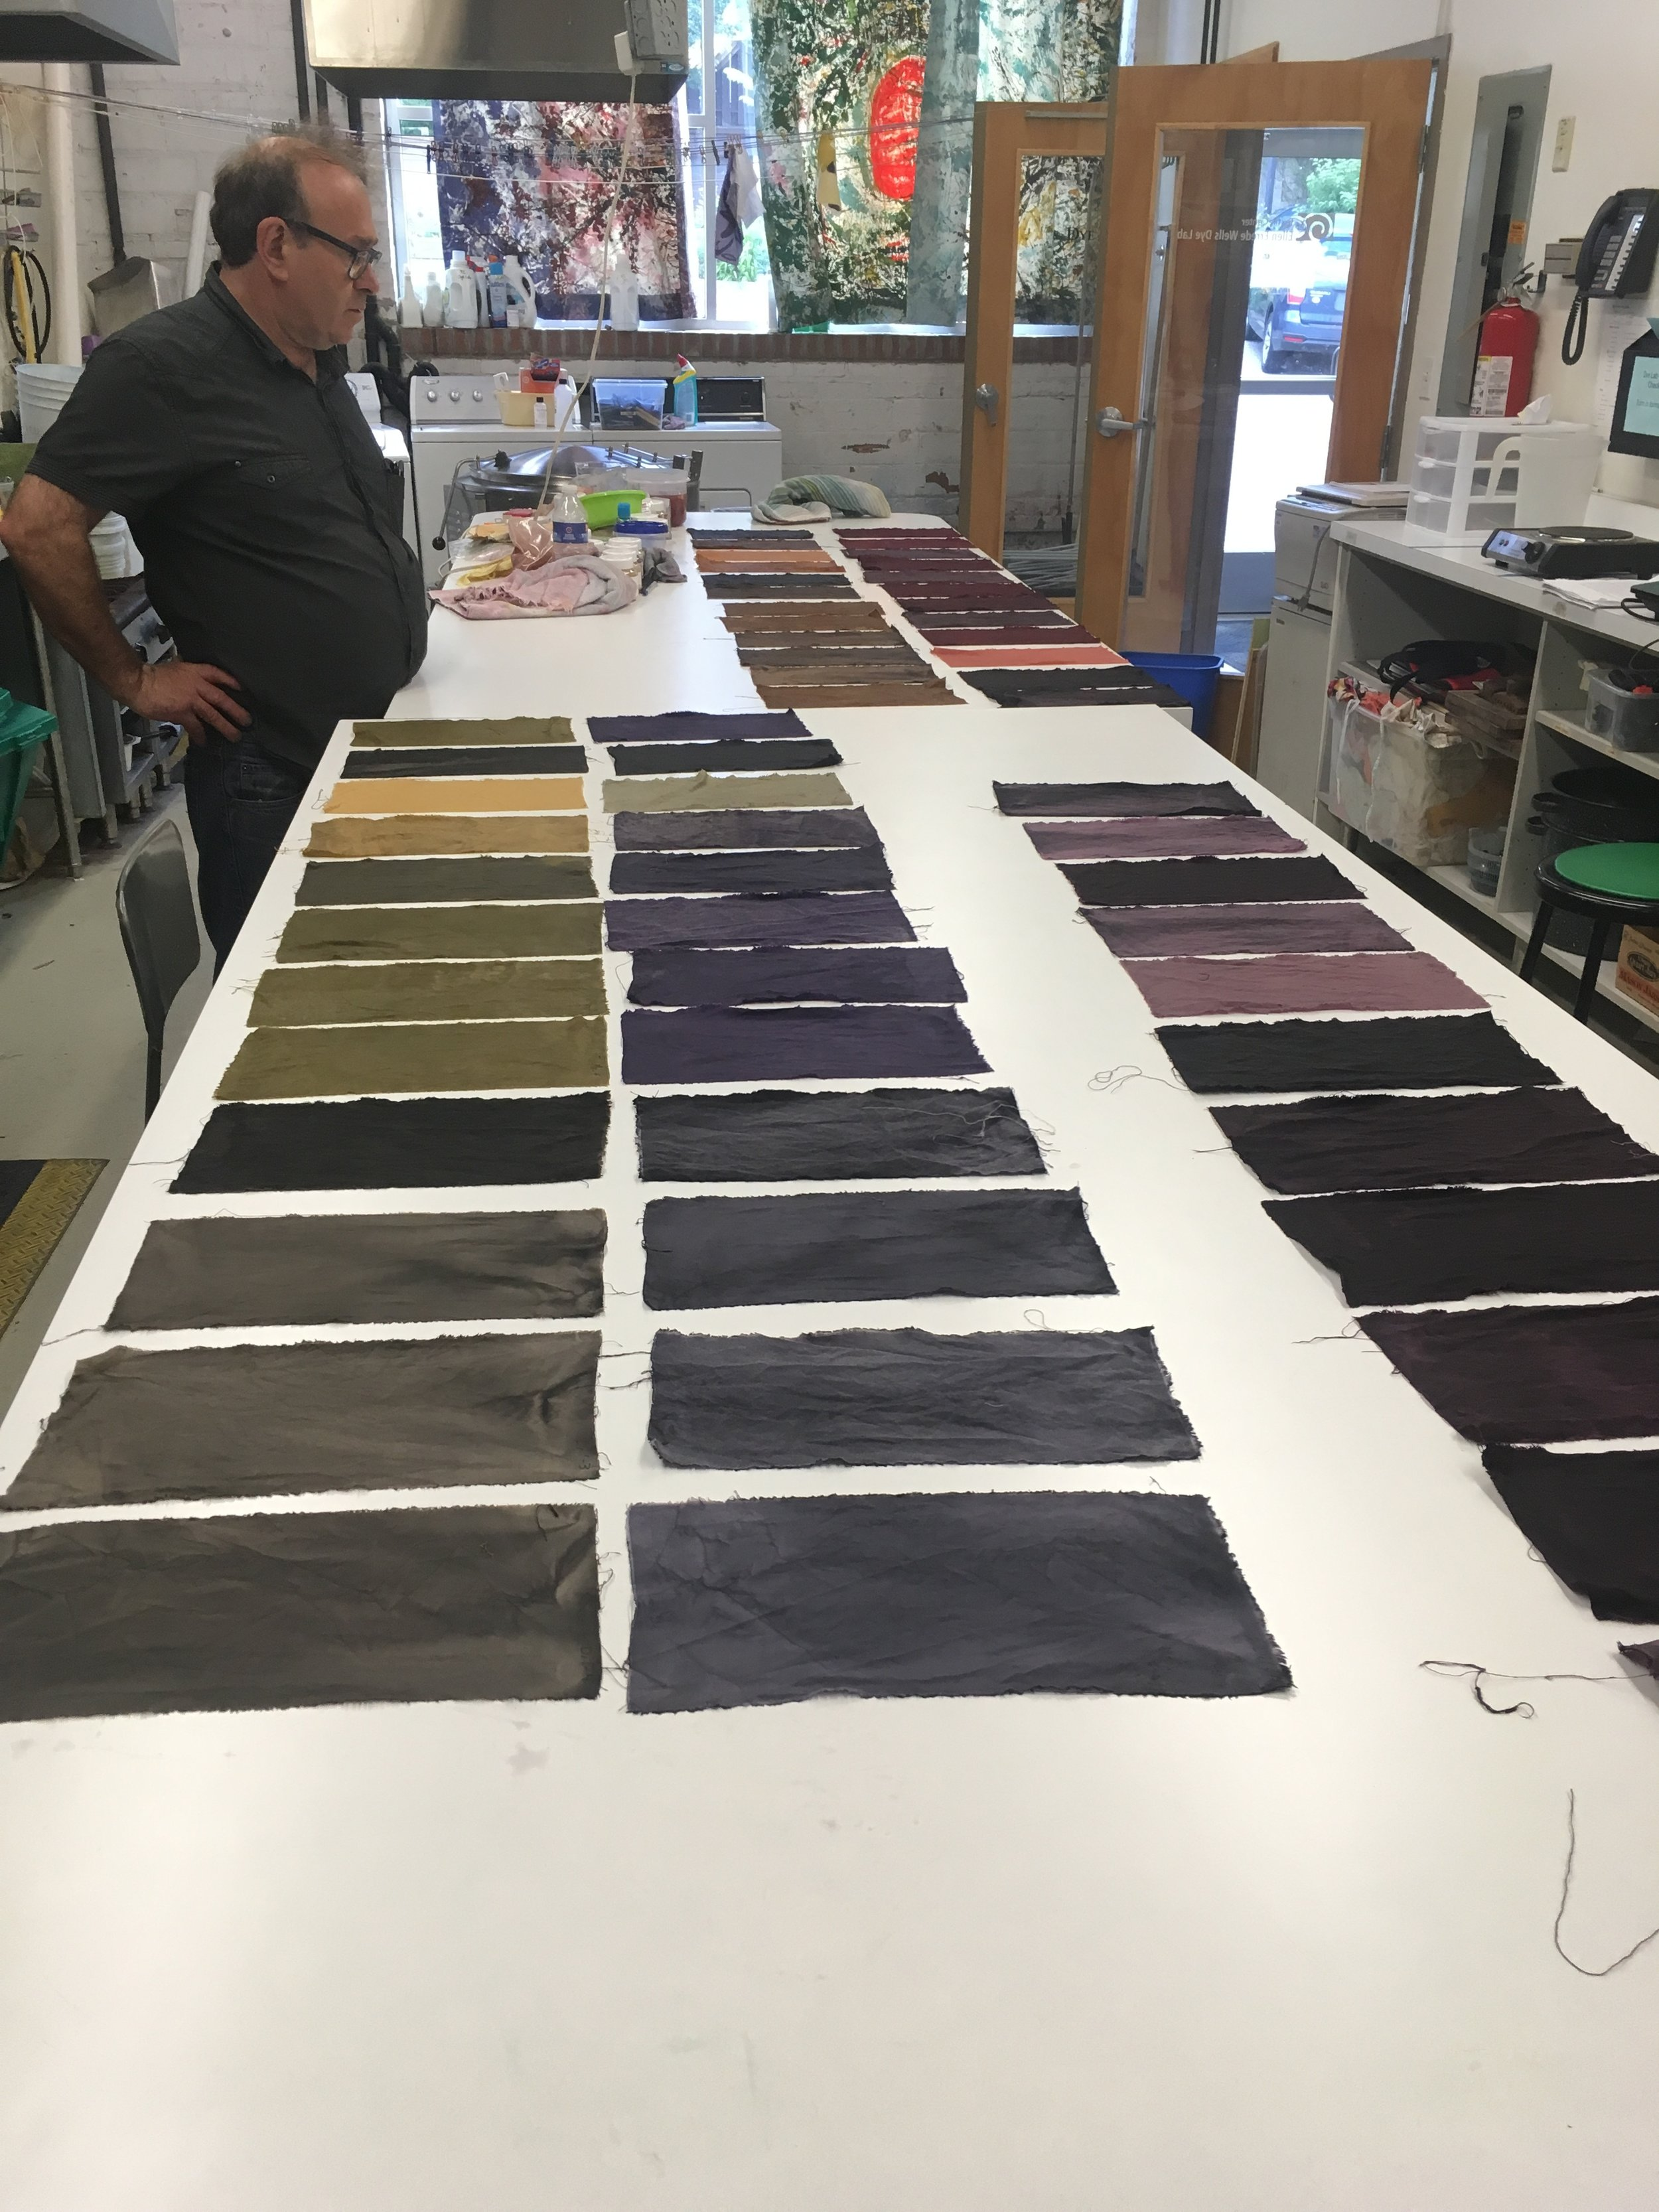 we made so many colors!